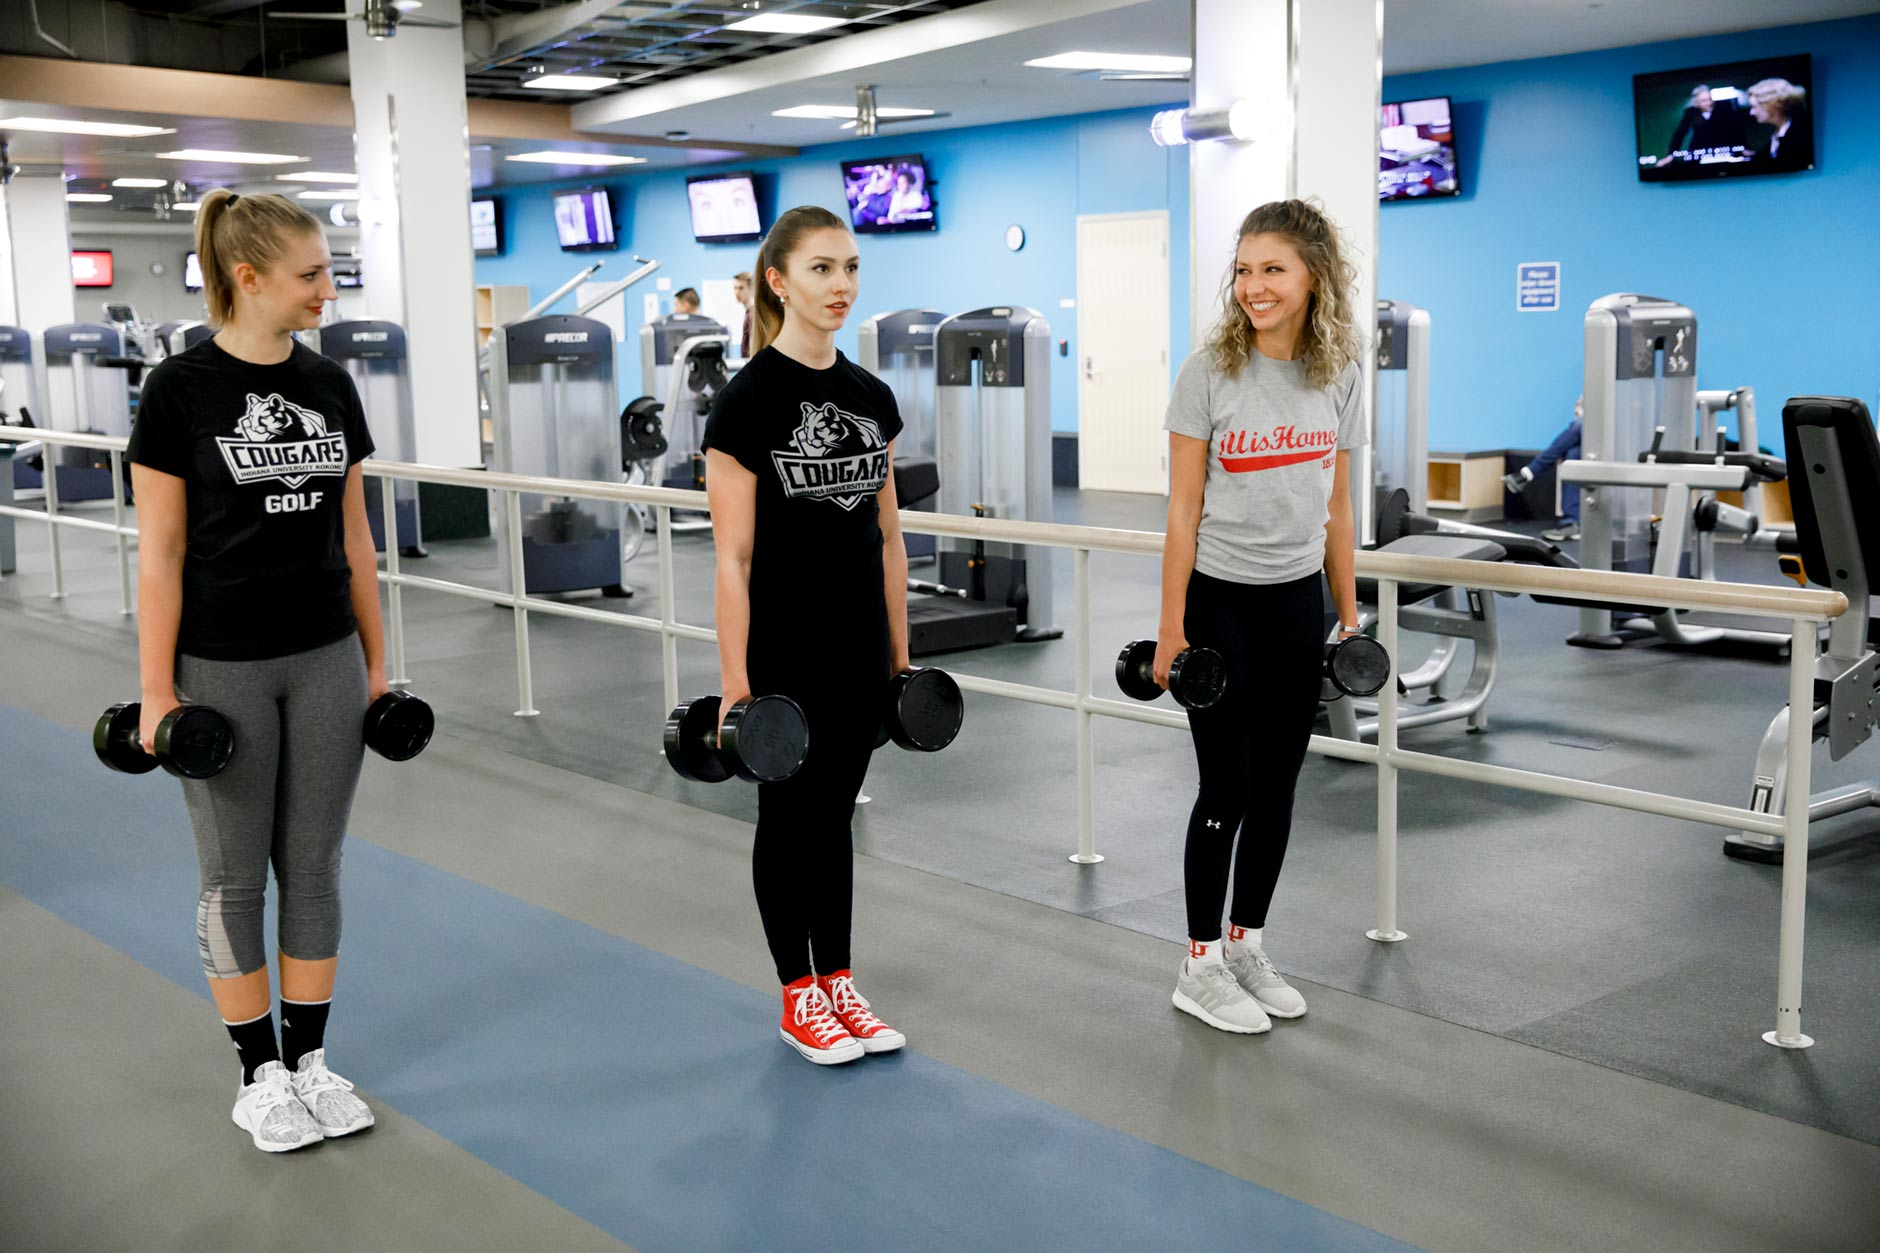 Bailey Troutman, right, a graduating senior, works out with her sisters, Brooke, left, and Brynna, in the Cole Family Wellness and Fitness Center at IU Kokomo on Wednesday, March 21, 2018. (James Brosher/IU Communications)